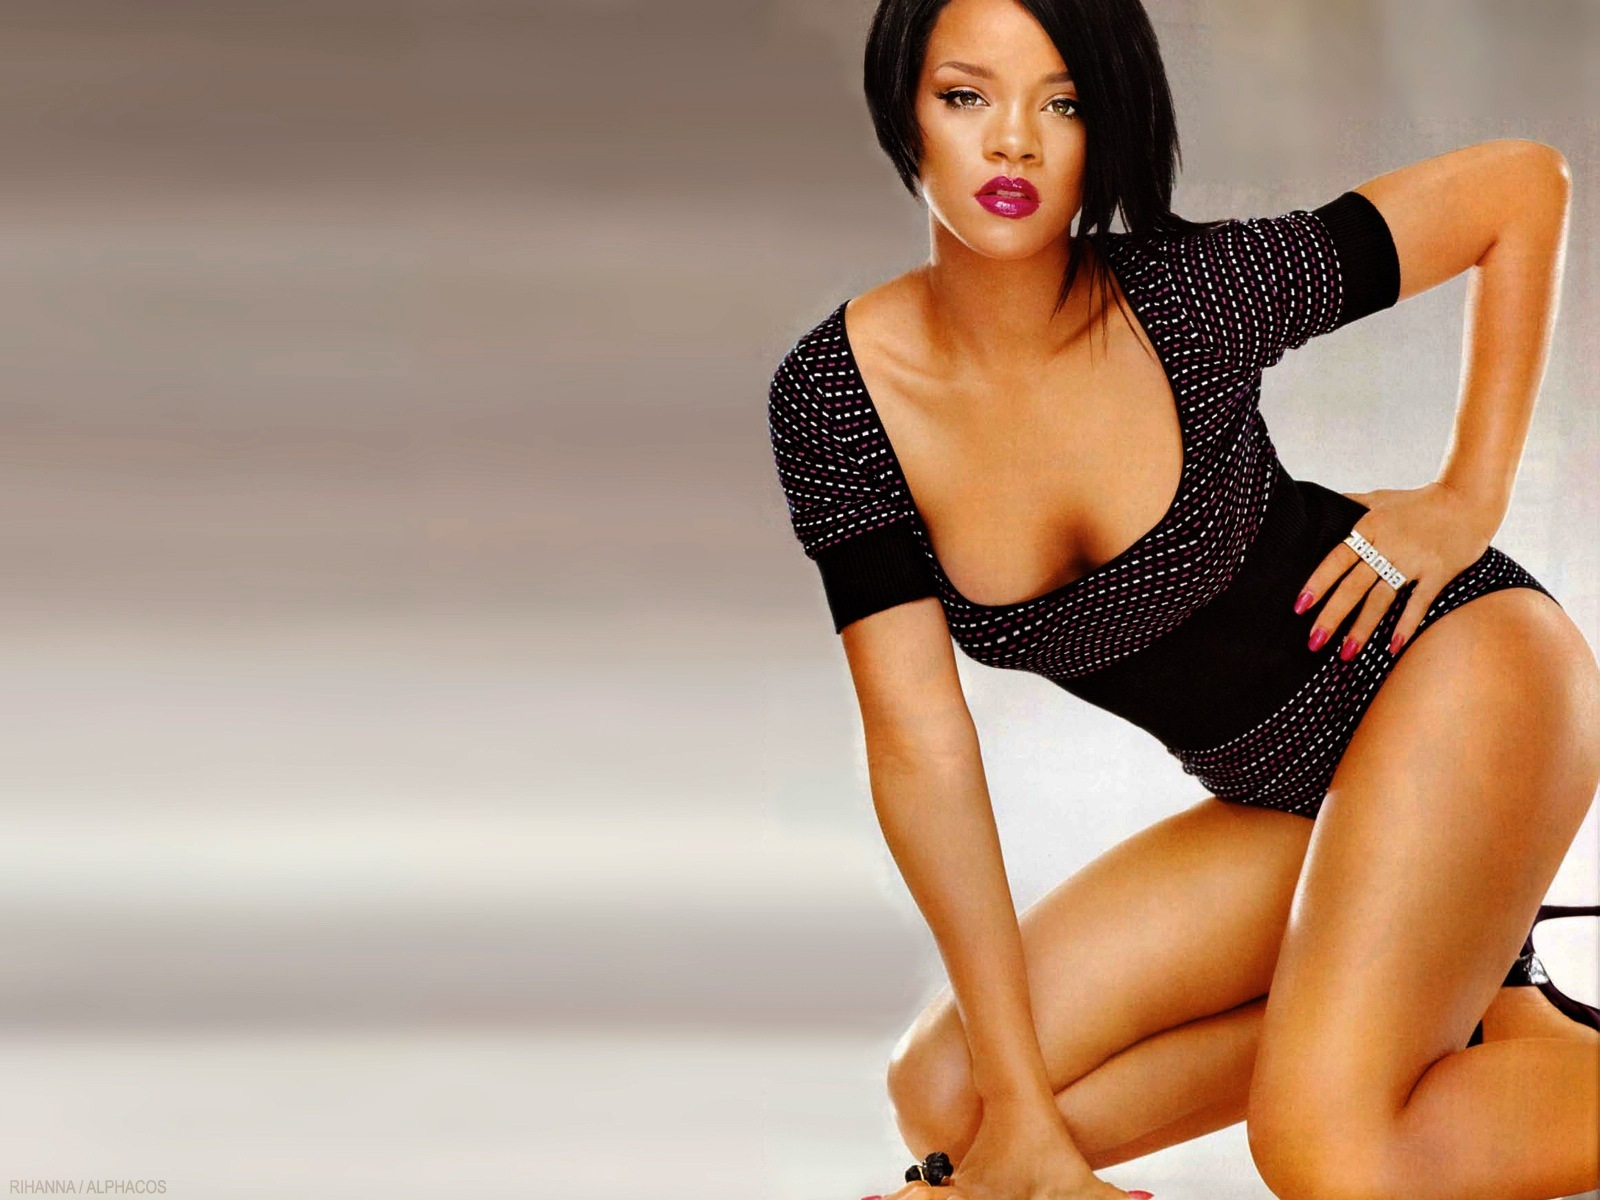 http://2.bp.blogspot.com/-STVg1SiZ0Zw/TncwMhBsSfI/AAAAAAAACPQ/ml2o6boVvRQ/s1600/rihanna-wallpapers-10-rihanna-wears-sexy-bodystocking-wallpaper.jpg